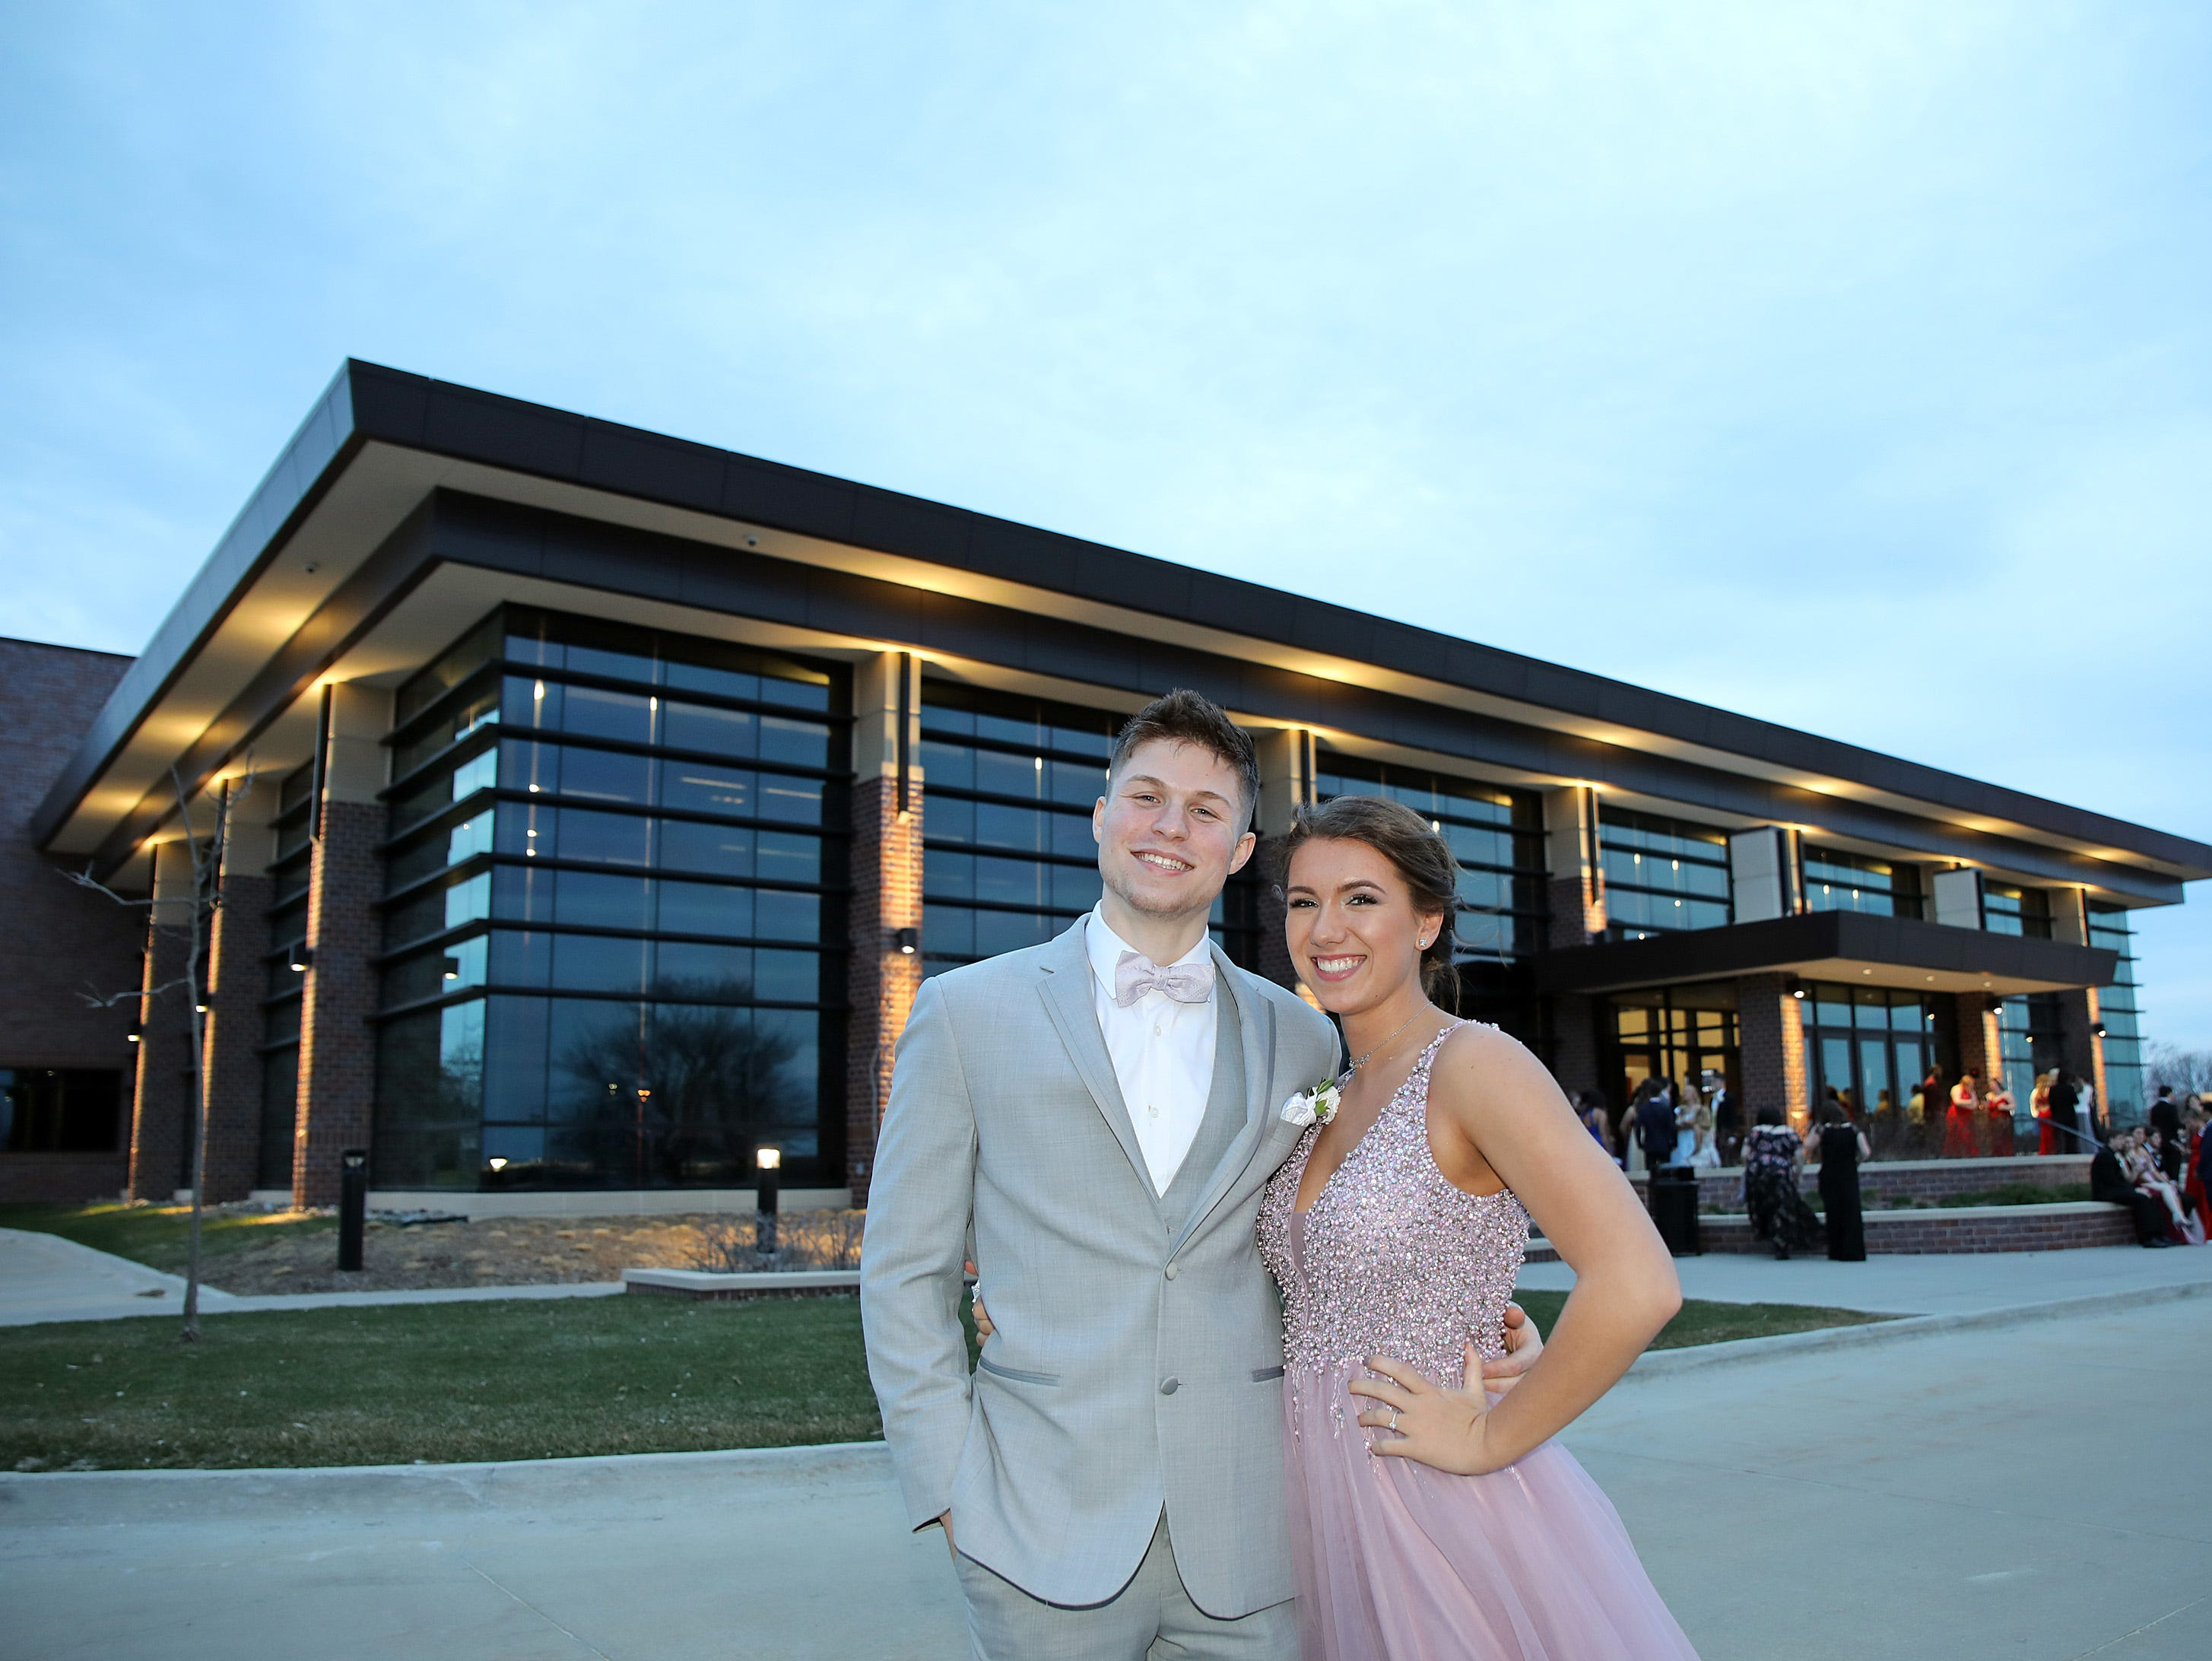 Graduate Michael Allie and junior Hailey Fielder arrive at the Waukee High School Prom at the Ron Pearson Center in West Des Moines on Saturday, April 6, 2019. The theme for this year's prom was Moonlight and Roses and then followed by a tropical-themed Waukiki After Prom from 11 p.m. to 5 a.m.